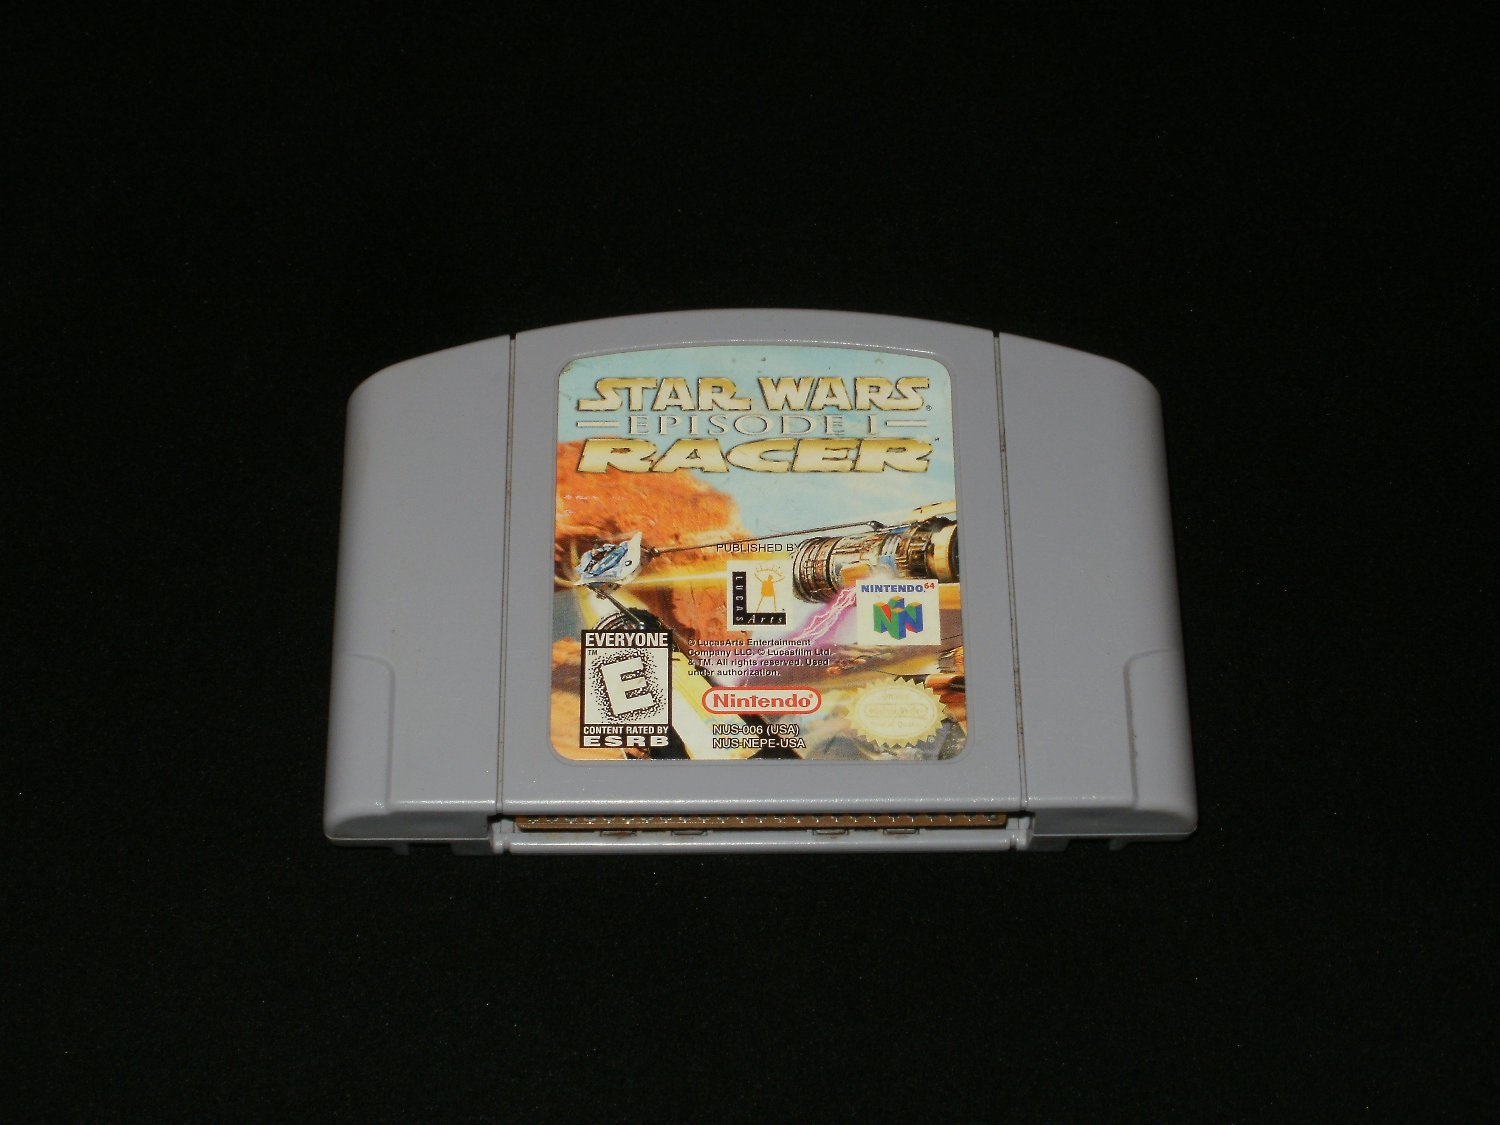 Star Wars Episode I Racer - N64 Nintendo